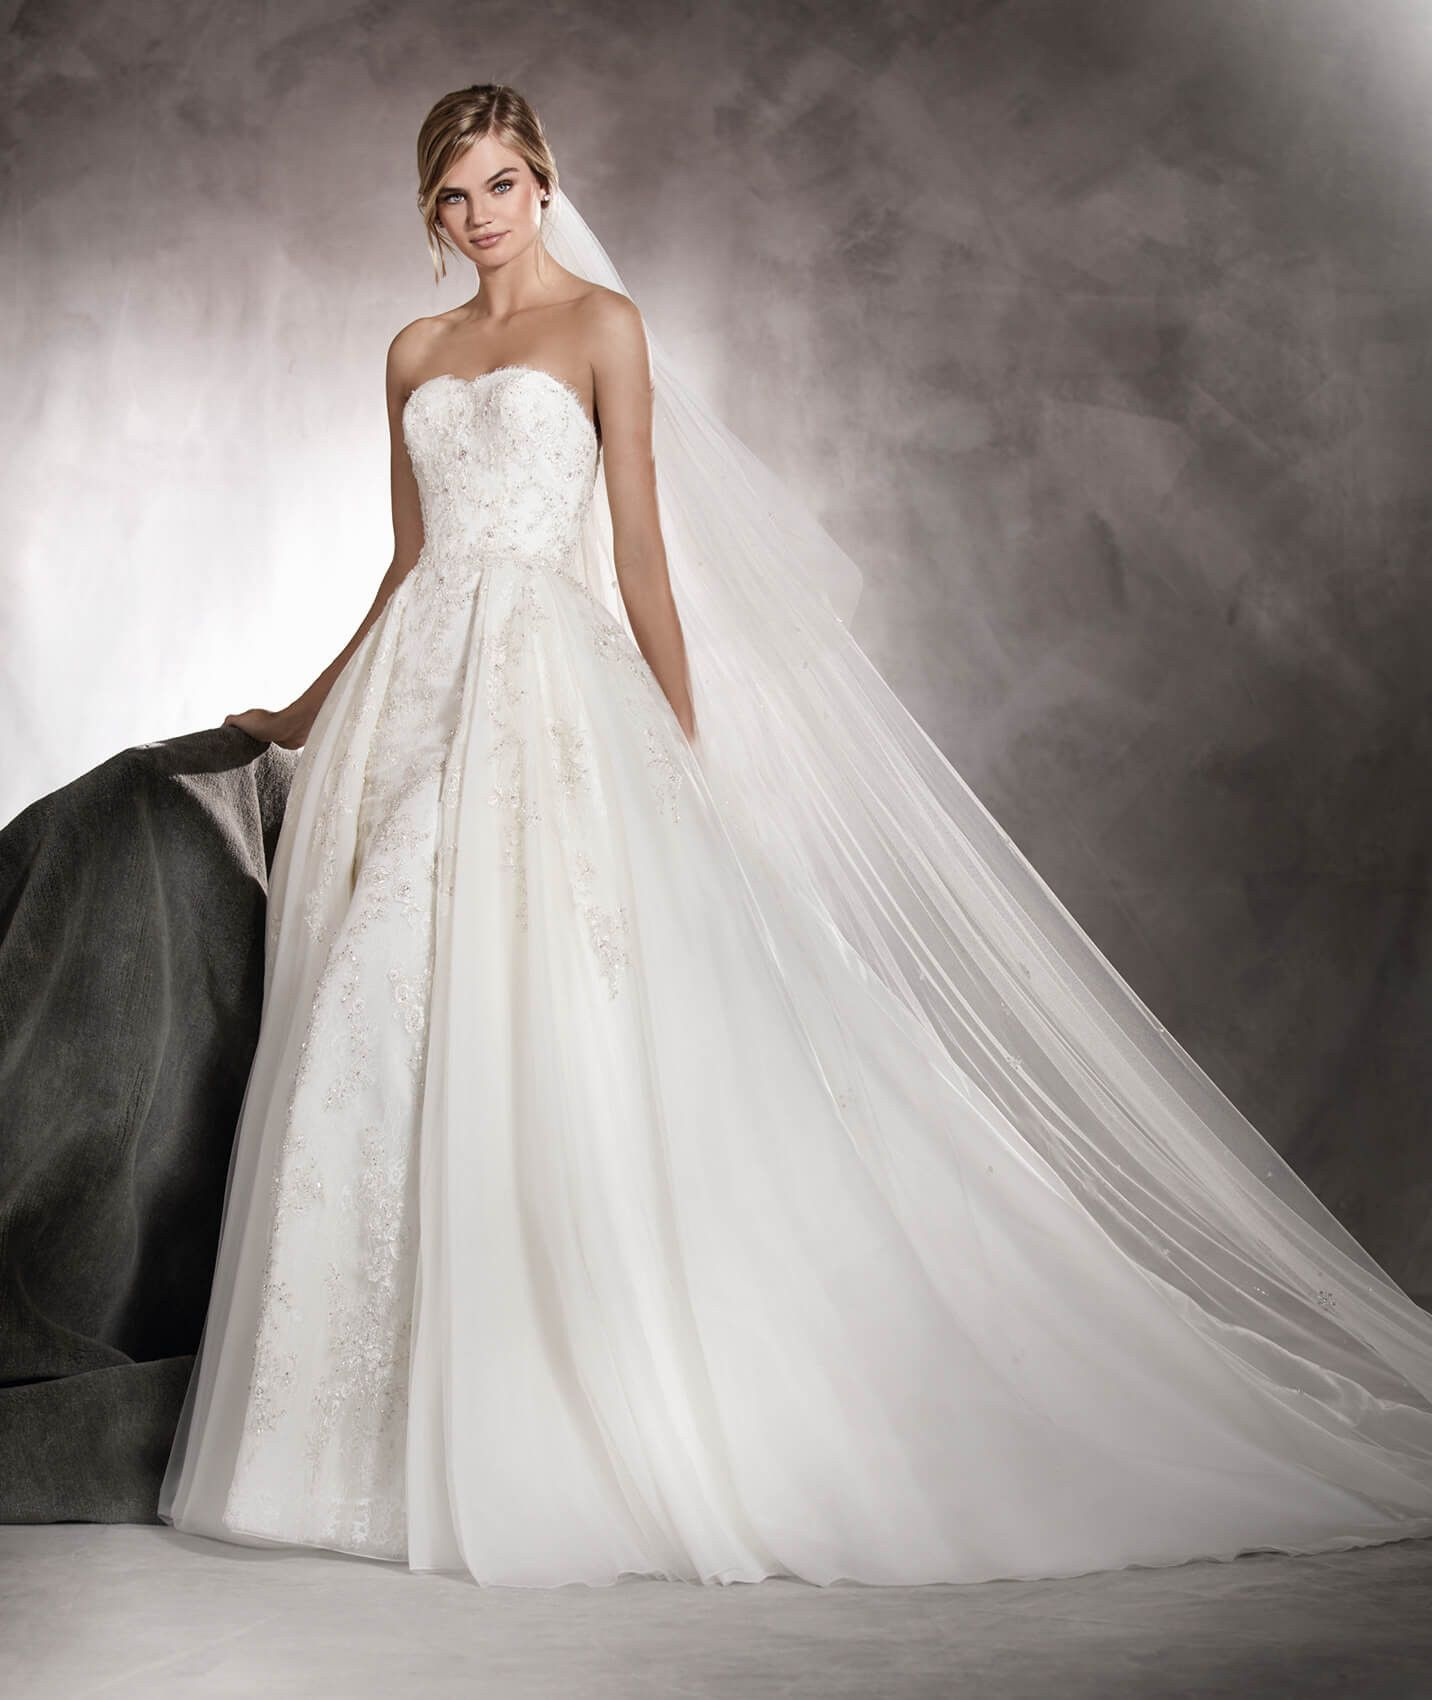 ABRIL - Princess wedding dress with sweetheart neckline, lace ...